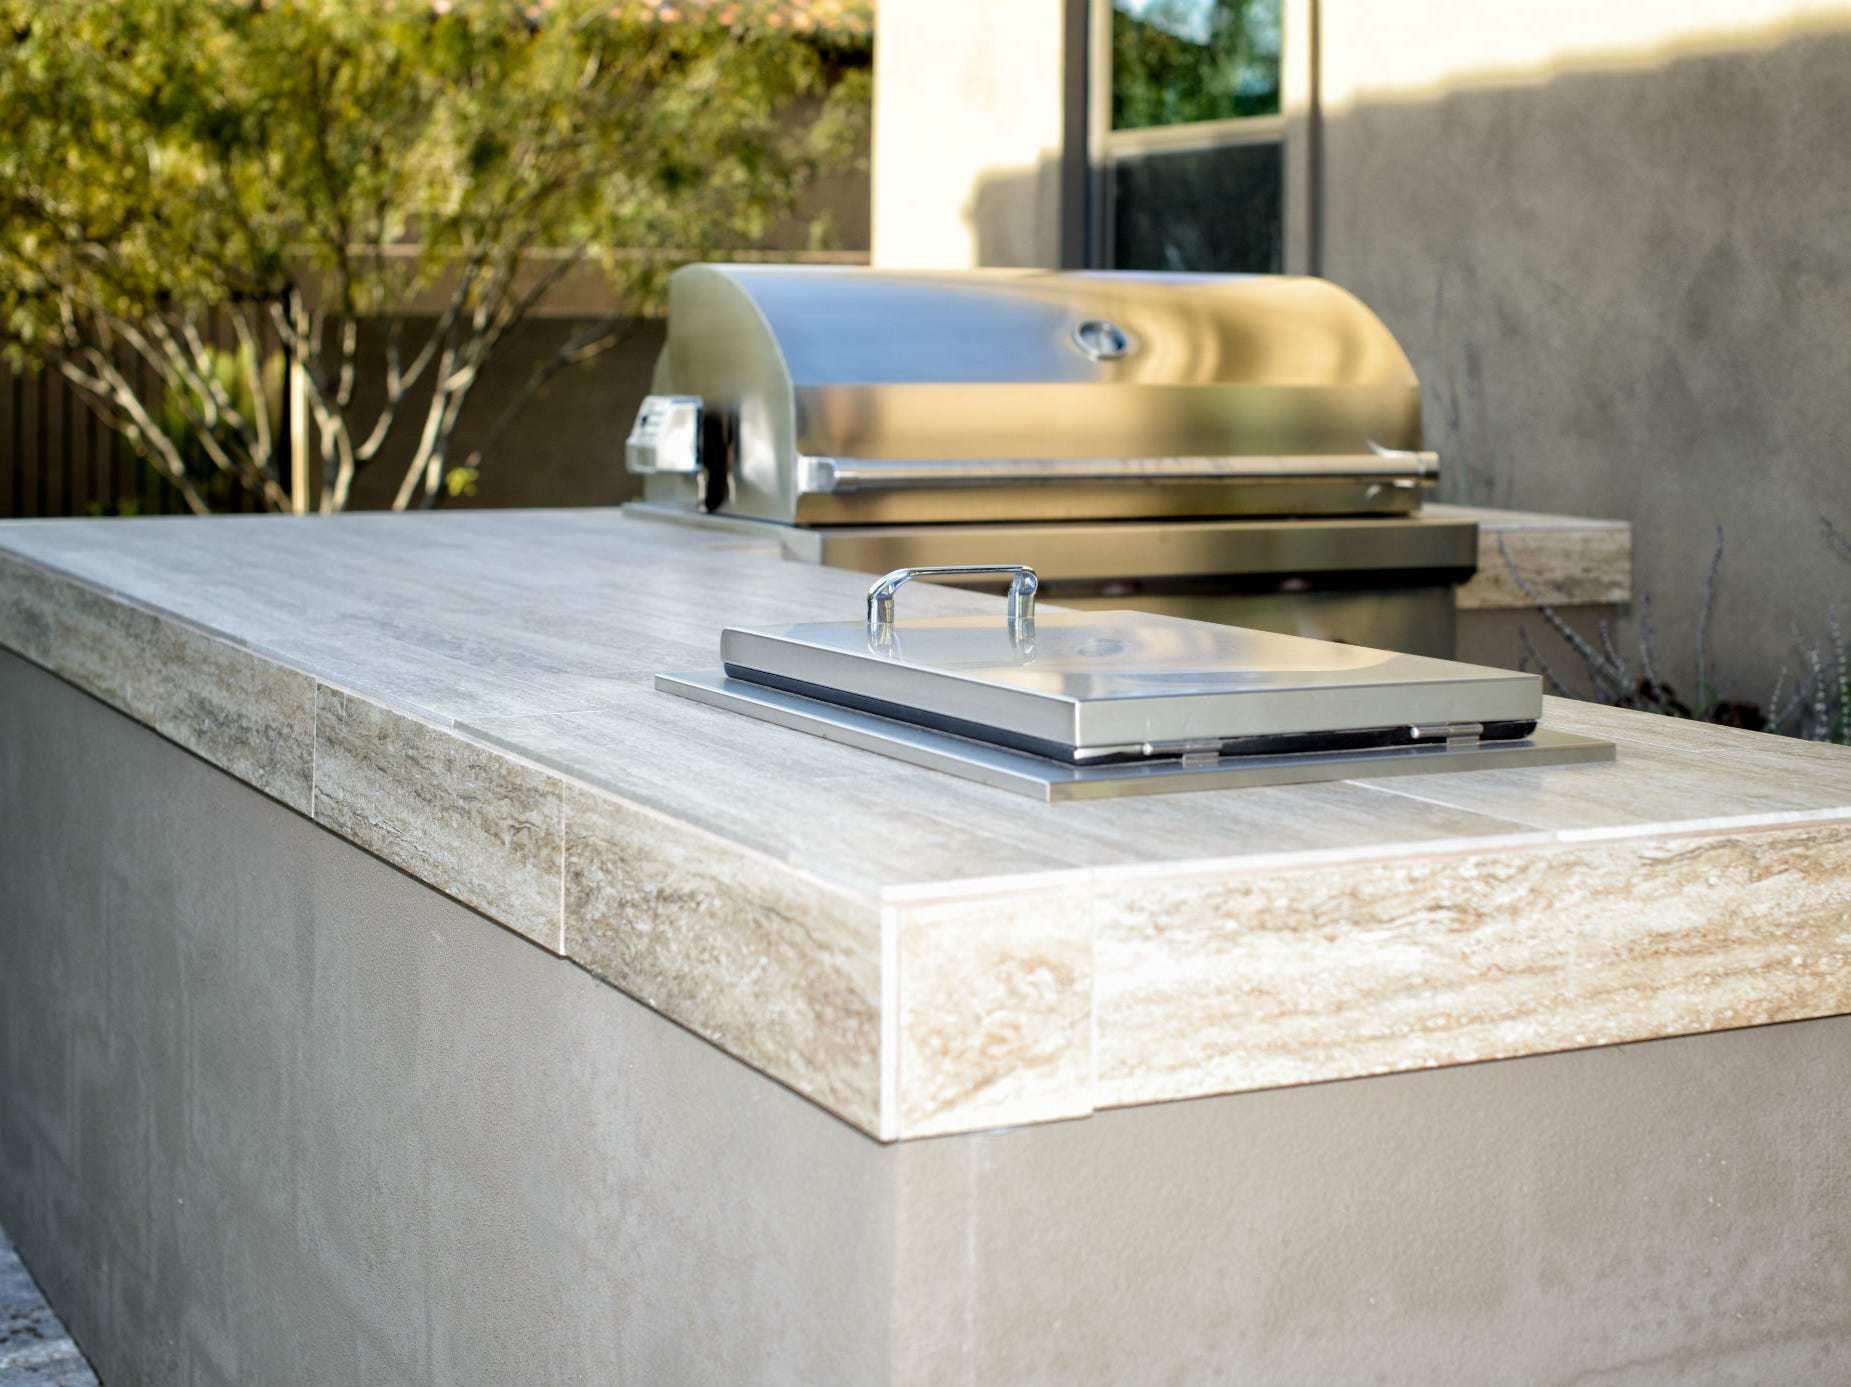 A barbecue with stainless-steel grill and drop-in cooler set in a tile top.